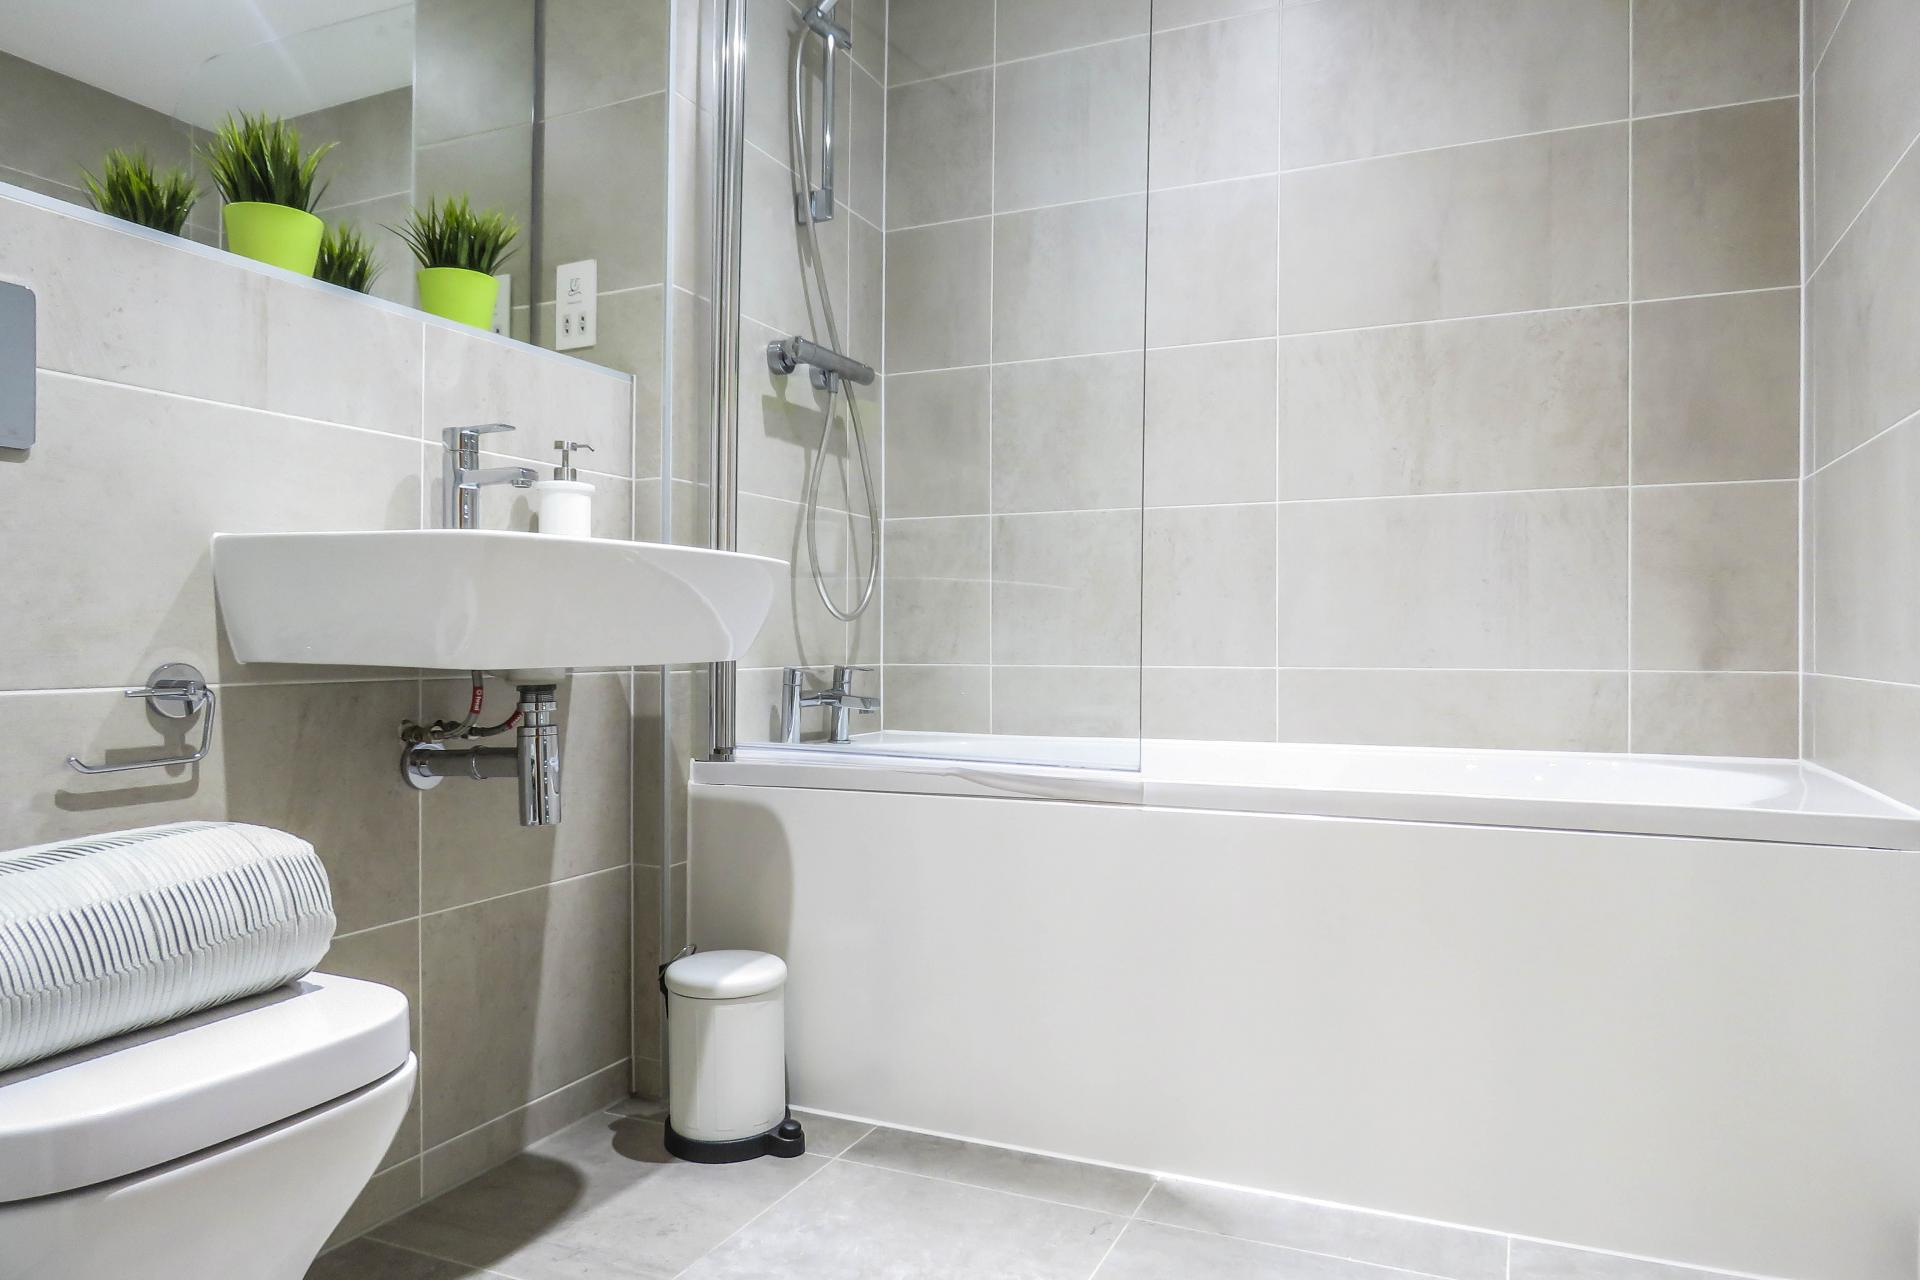 Bath at Jewellery Quarter Serviced Apartments